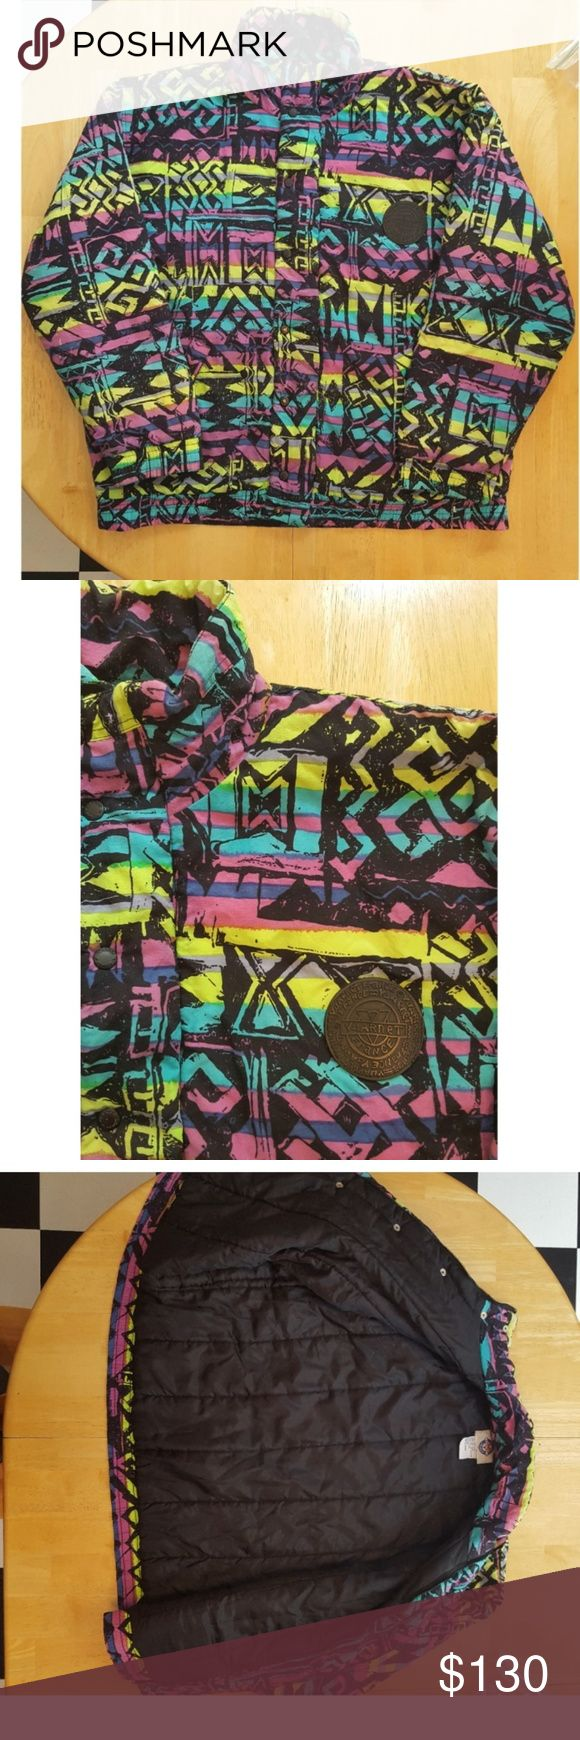 VINTAGE VUARNET FRANCE Neon Aztec Jacket Ski Coat Vintage Vuarnet France jacket from the 1980s! Men's size large. Neon green, purple, teal, black geometric Aztec print! Great vintage condition, zipper and buttons work well, small torn spot near the front bottom of the jacket (see last picture, I don't think this would be noticeable at all), some paint chips on the front buttons. Zips up the front and also has black buttons. 2 front pockets. Black insulated lining inside. 100% nylon for the…